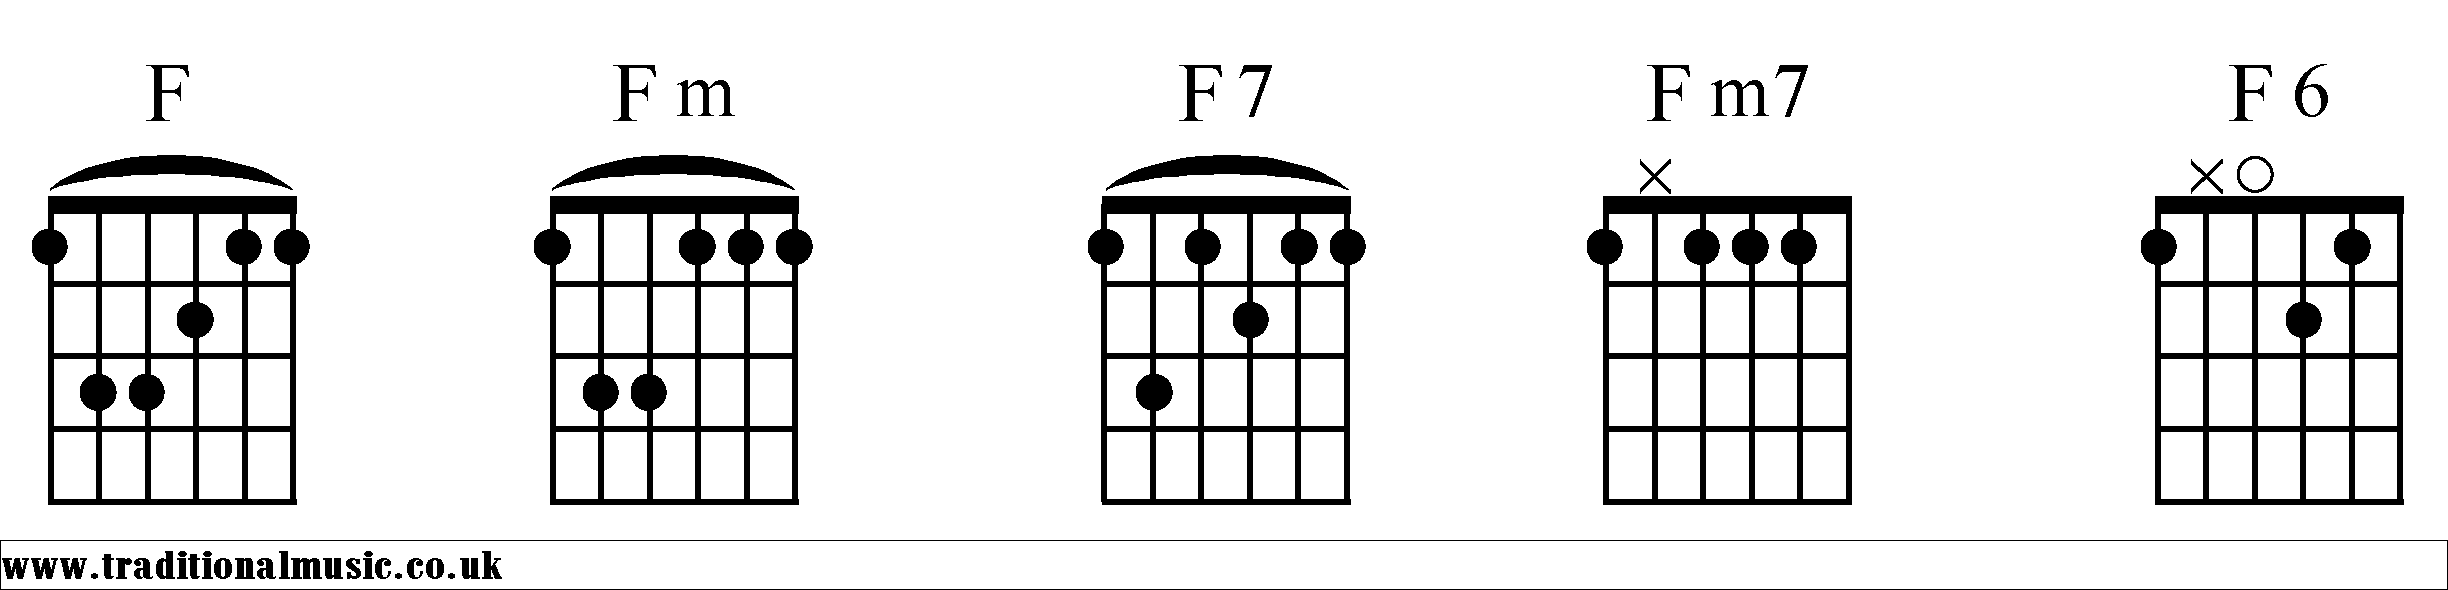 Chord charts for guitar f chords starting f for guitar in standard tuning hexwebz Gallery